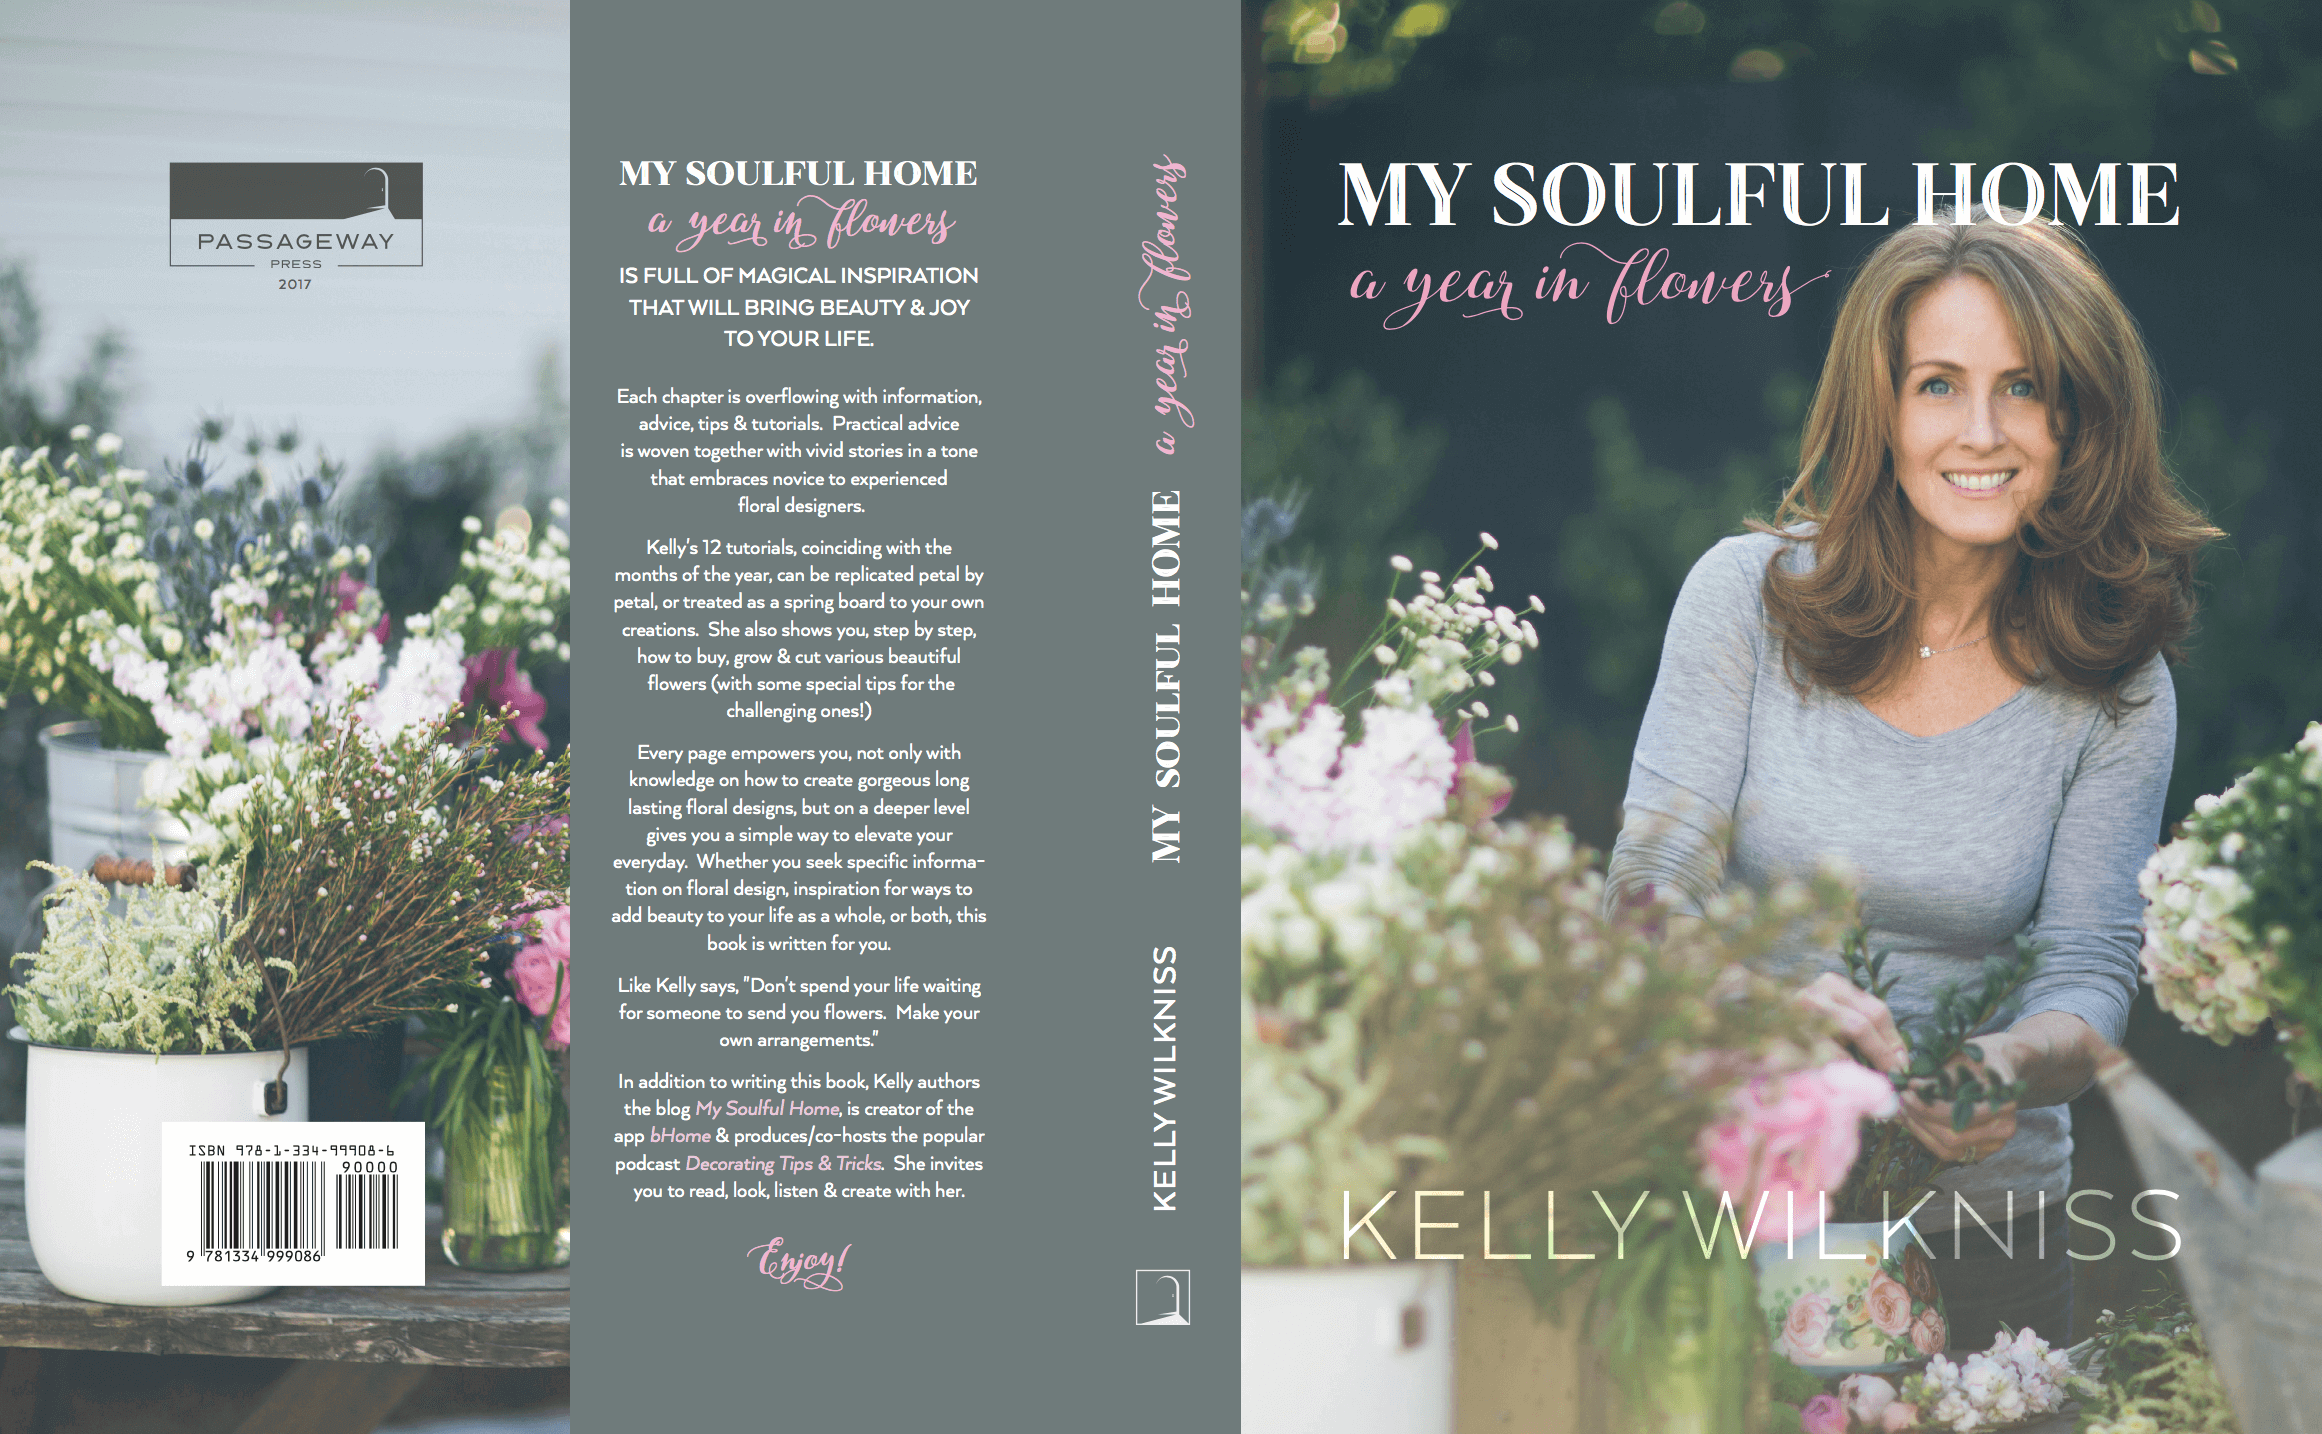 book cover my soulful home picturing Kelly Wilkniss